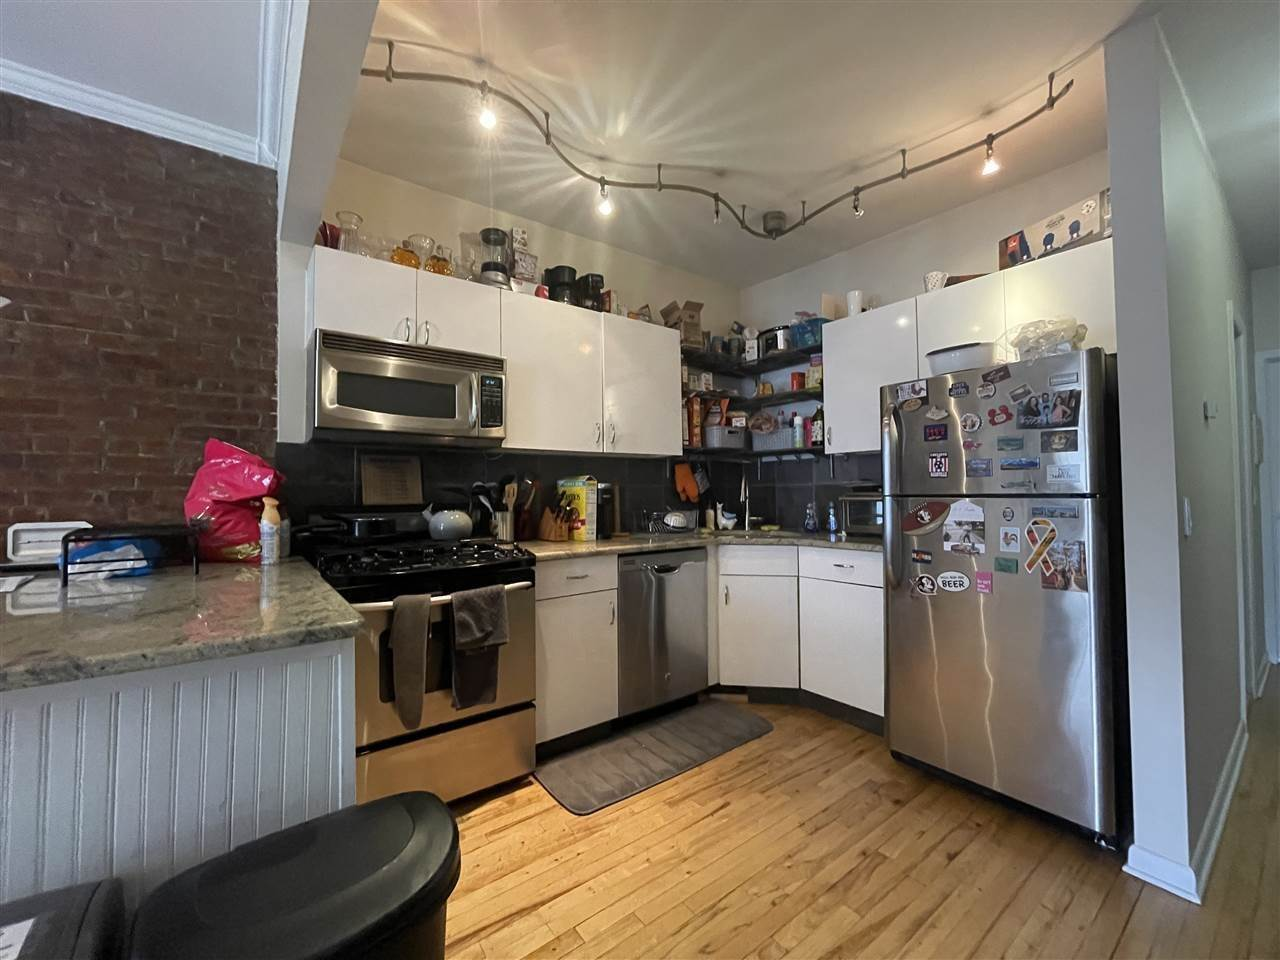 2. Residential for Rent at 77 Garden Street #3 Hoboken, New Jersey 07030 United States